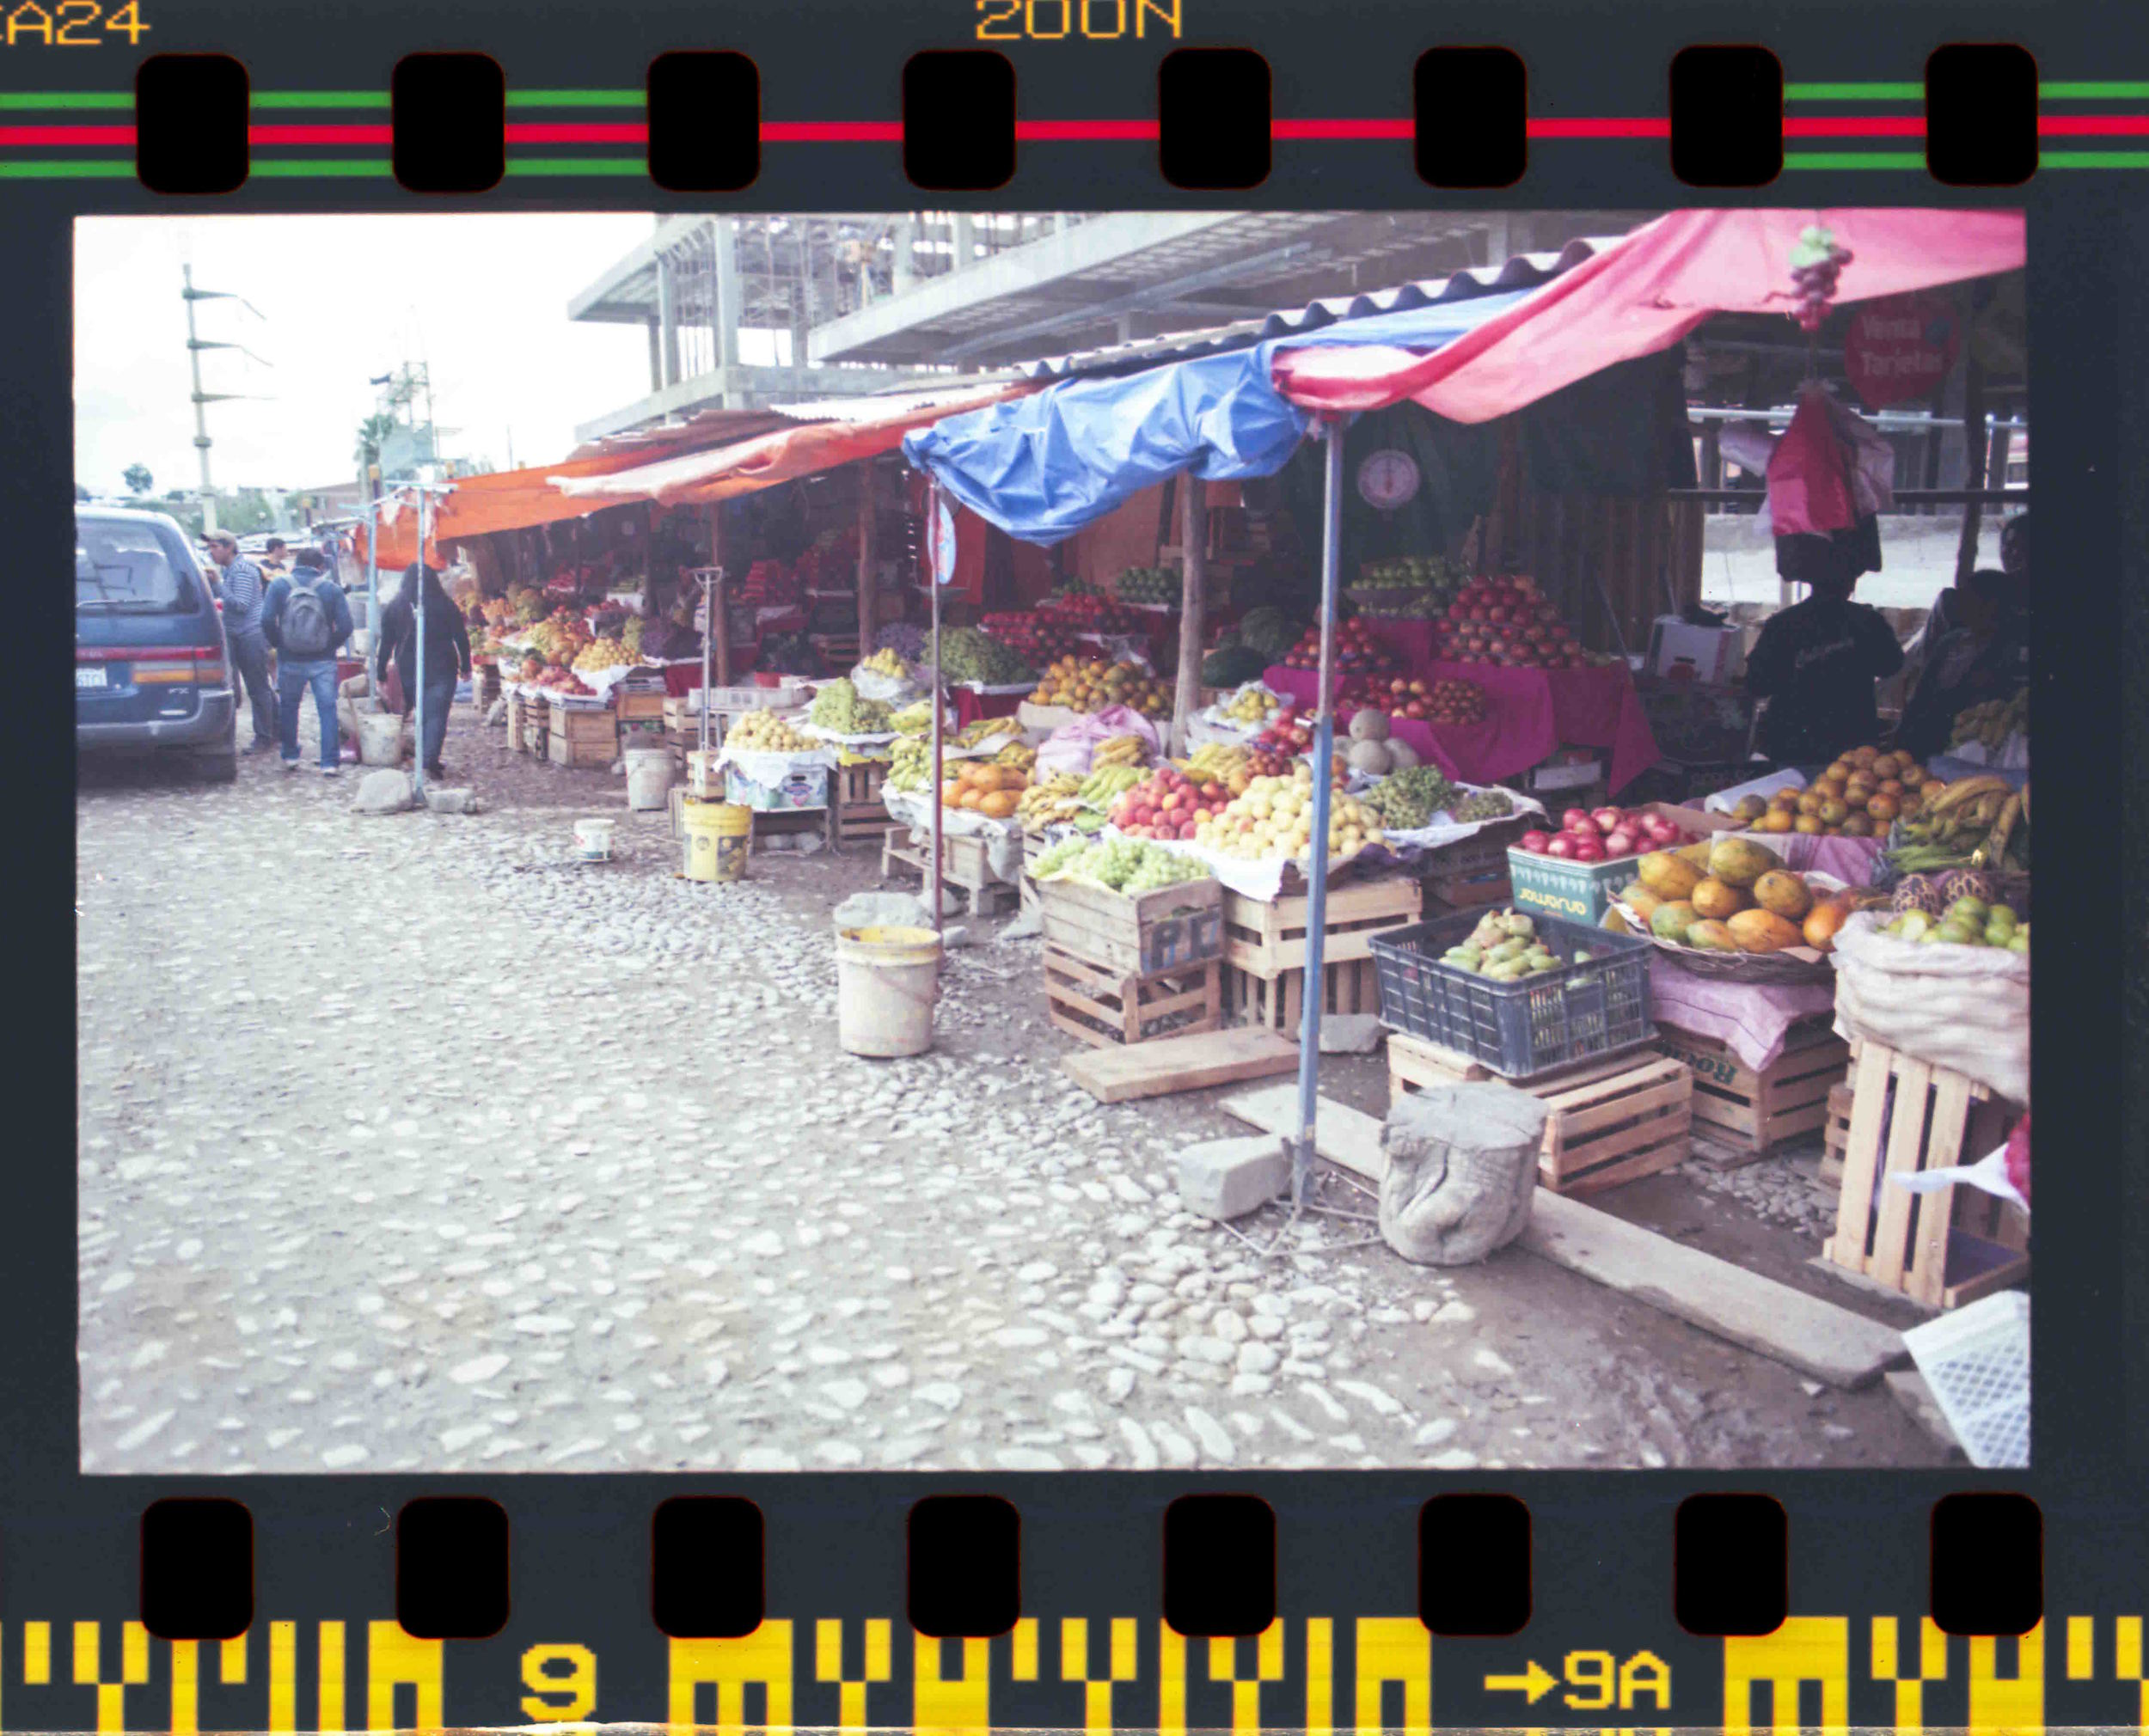 Open-air market in Cochabamba